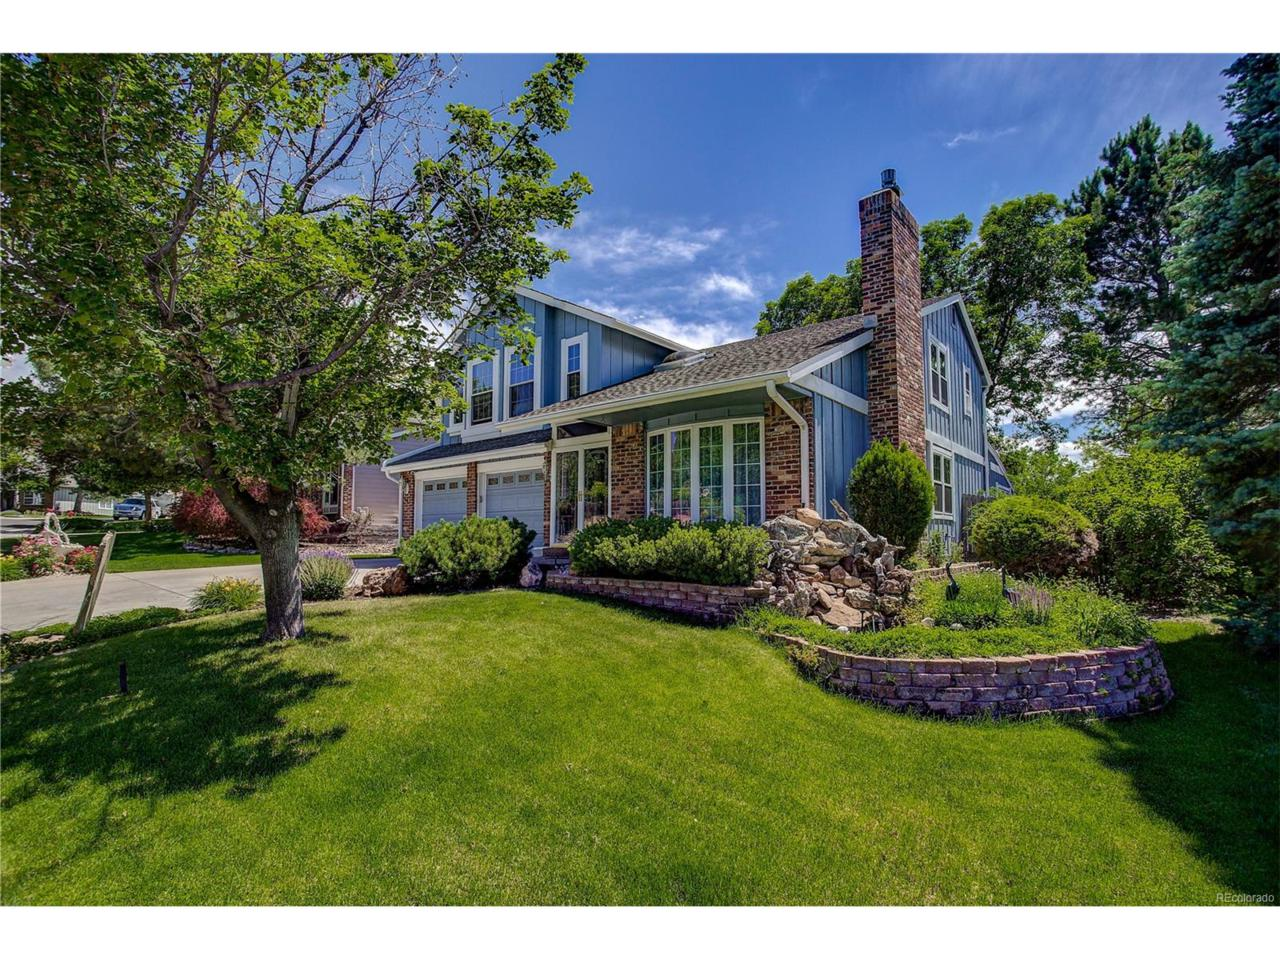 10343 Northpark Drive, Westminster, CO 80031 (MLS #5027493) :: 8z Real Estate